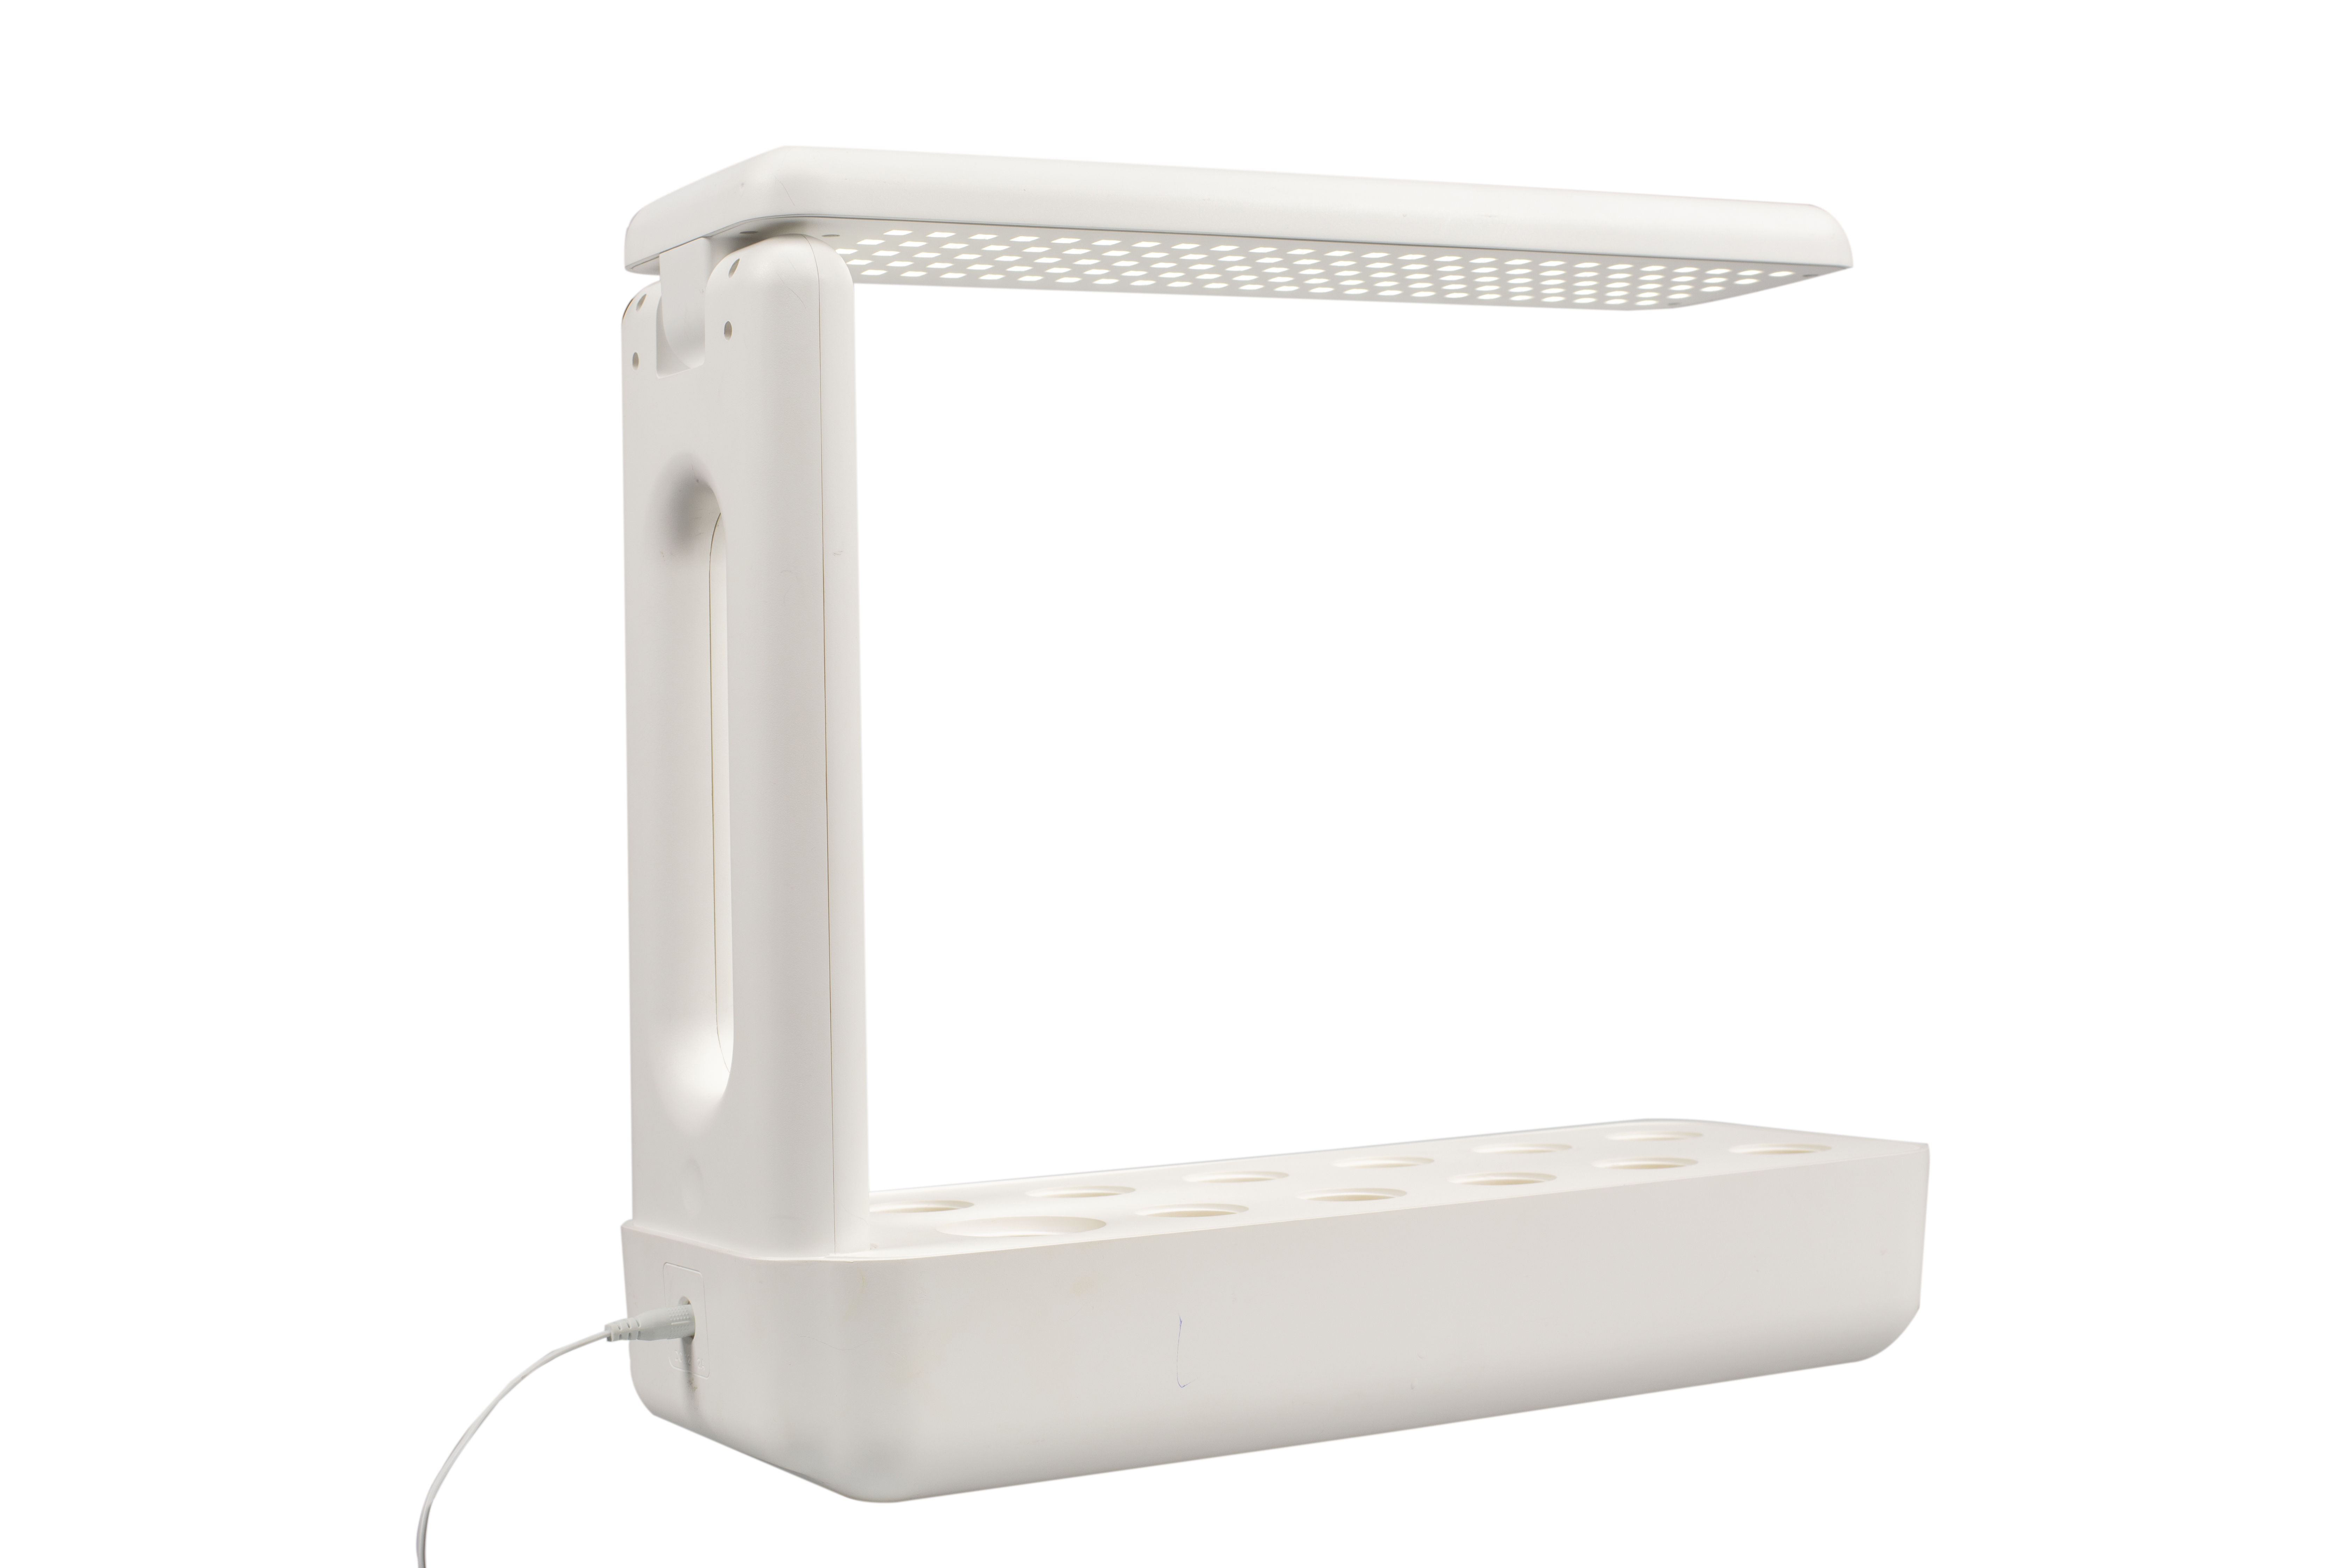 VegeBOX Kitchen Vegebox planting machine with EU plug, white